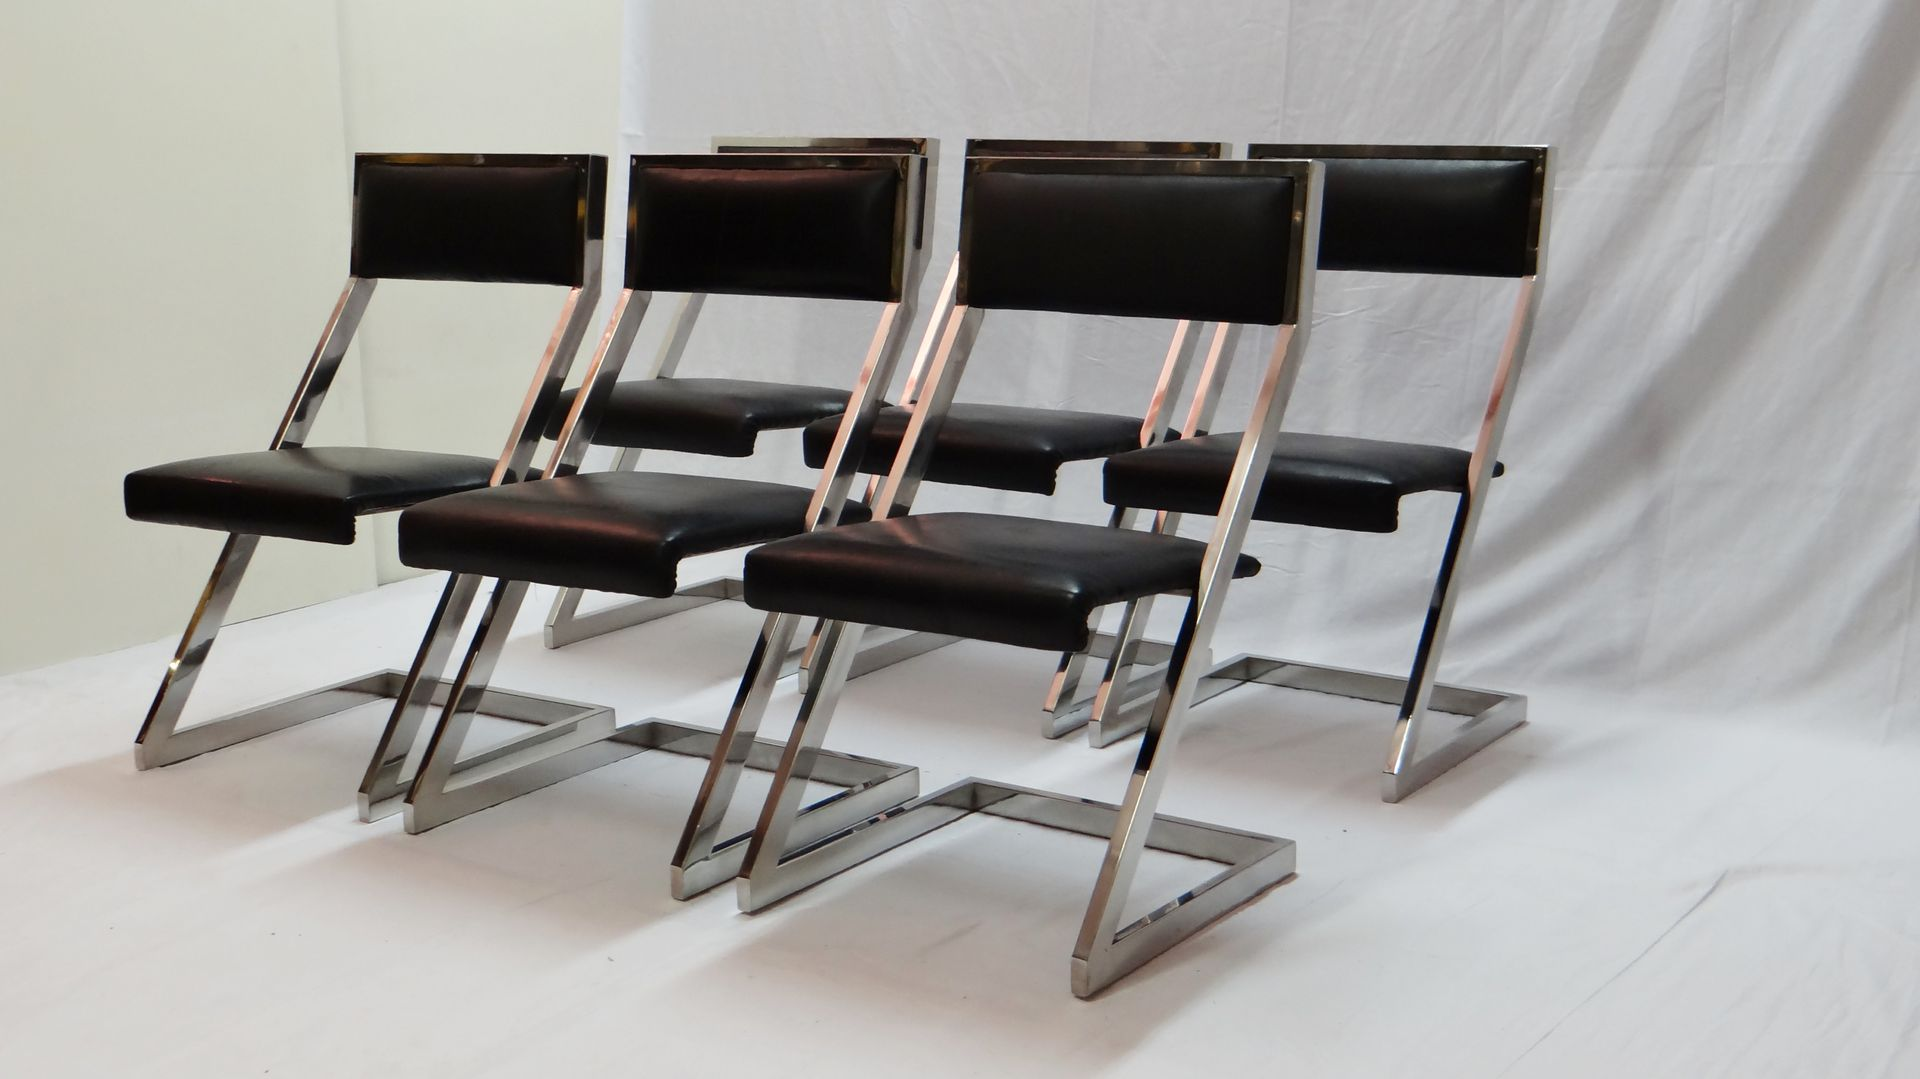 Superb img of Chrome Plated Z Shaped Dining Chairs 1970s Set of 6 for sale at  with #5D4C44 color and 1920x1079 pixels